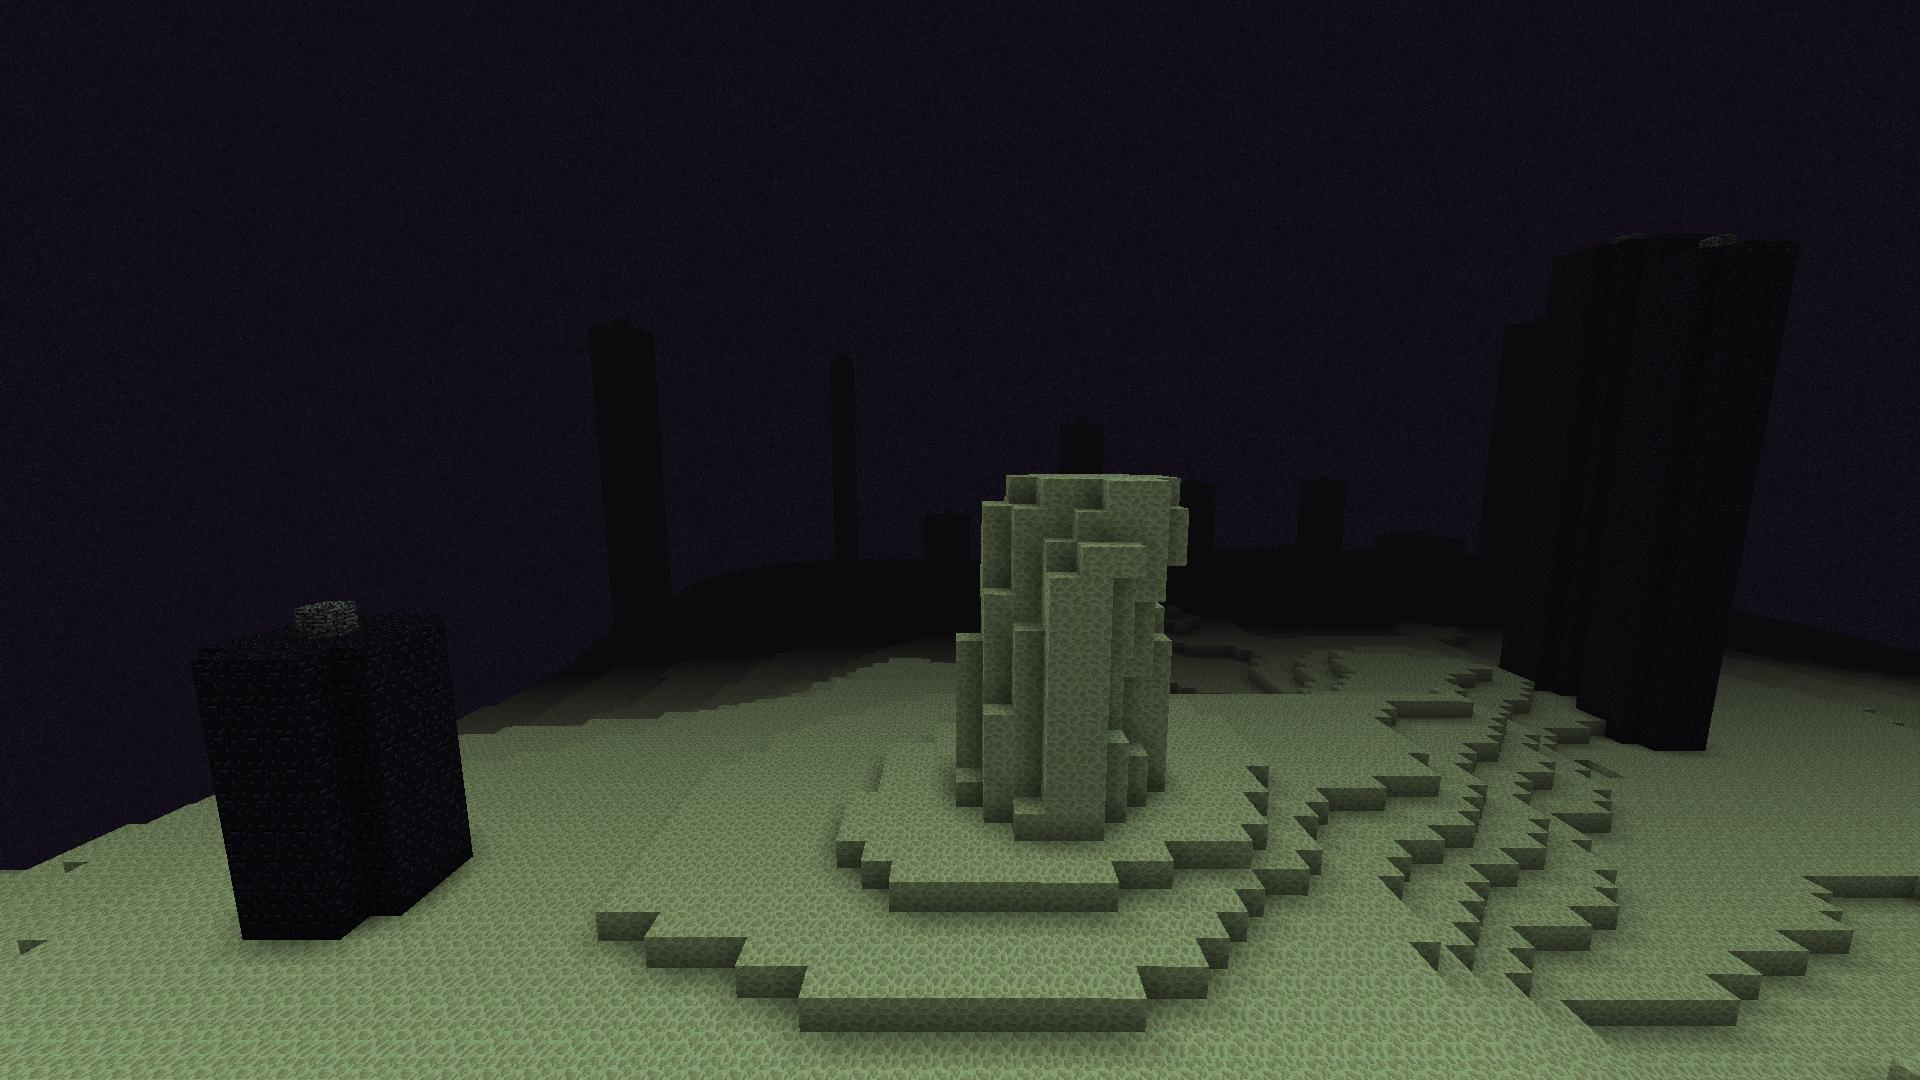 Silly end stone towers are for Obsidian   Minecraft 1920x1080